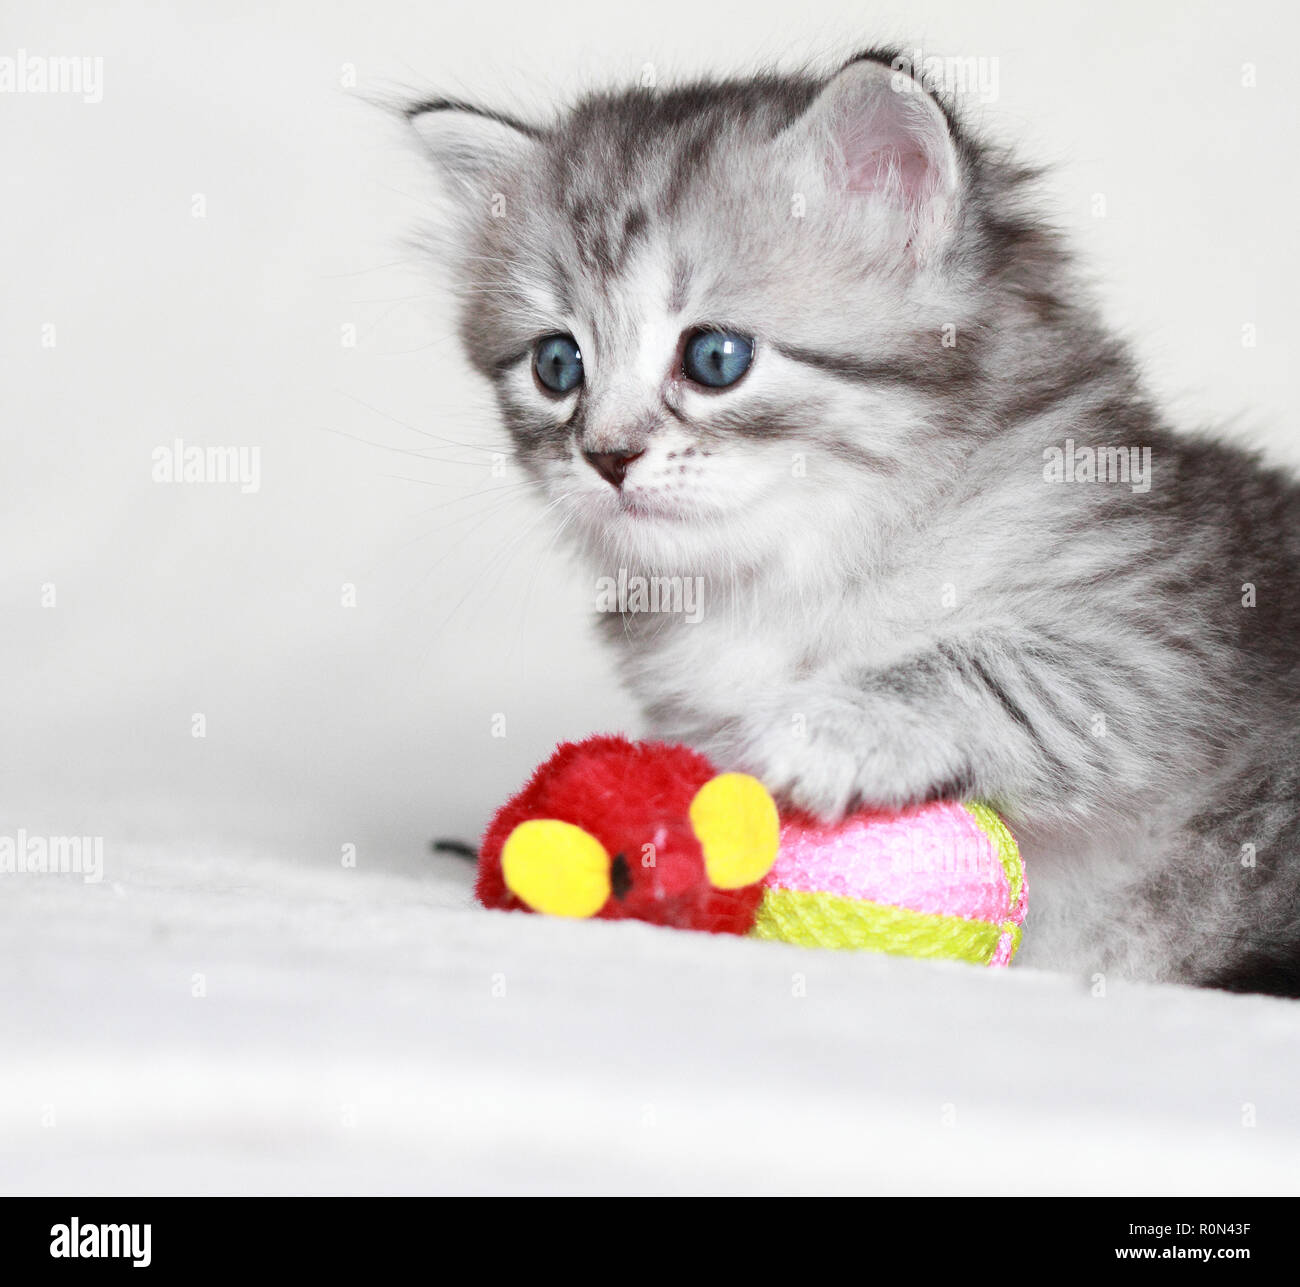 Adorable puppy cat playing in winter time - Stock Image